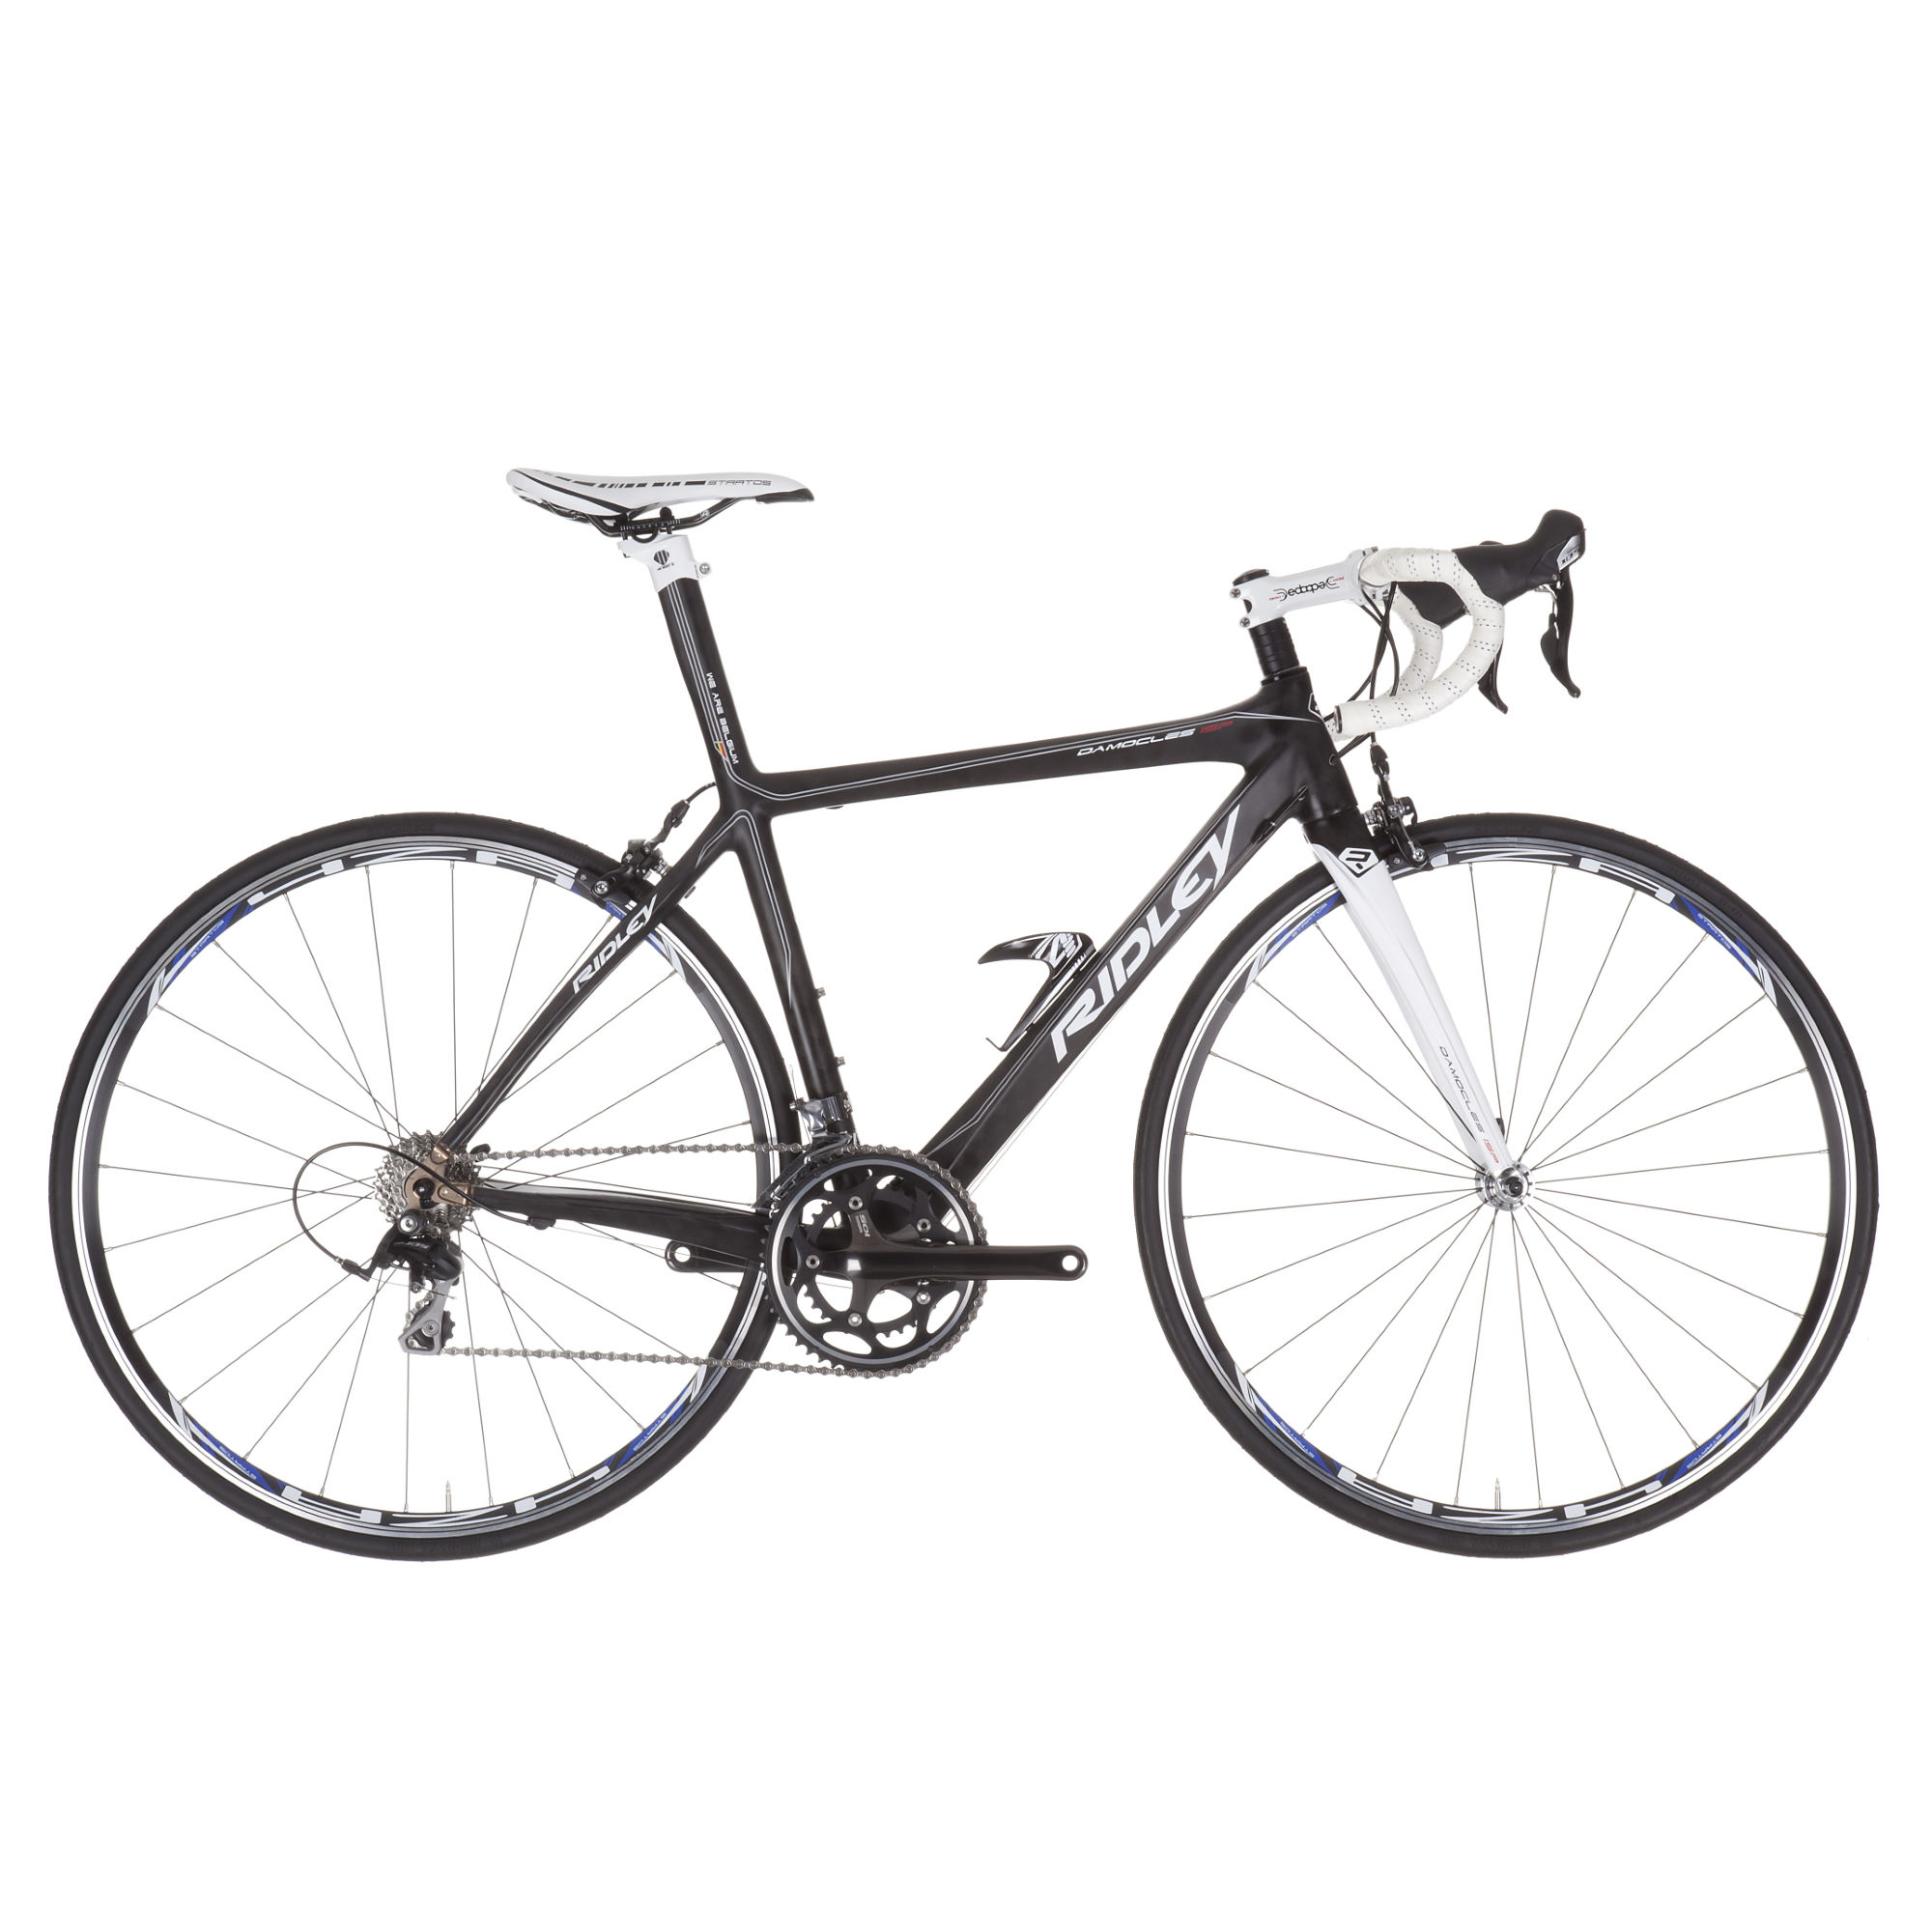 Ridley Damocles Special Edition 105 2012 Road Bikes